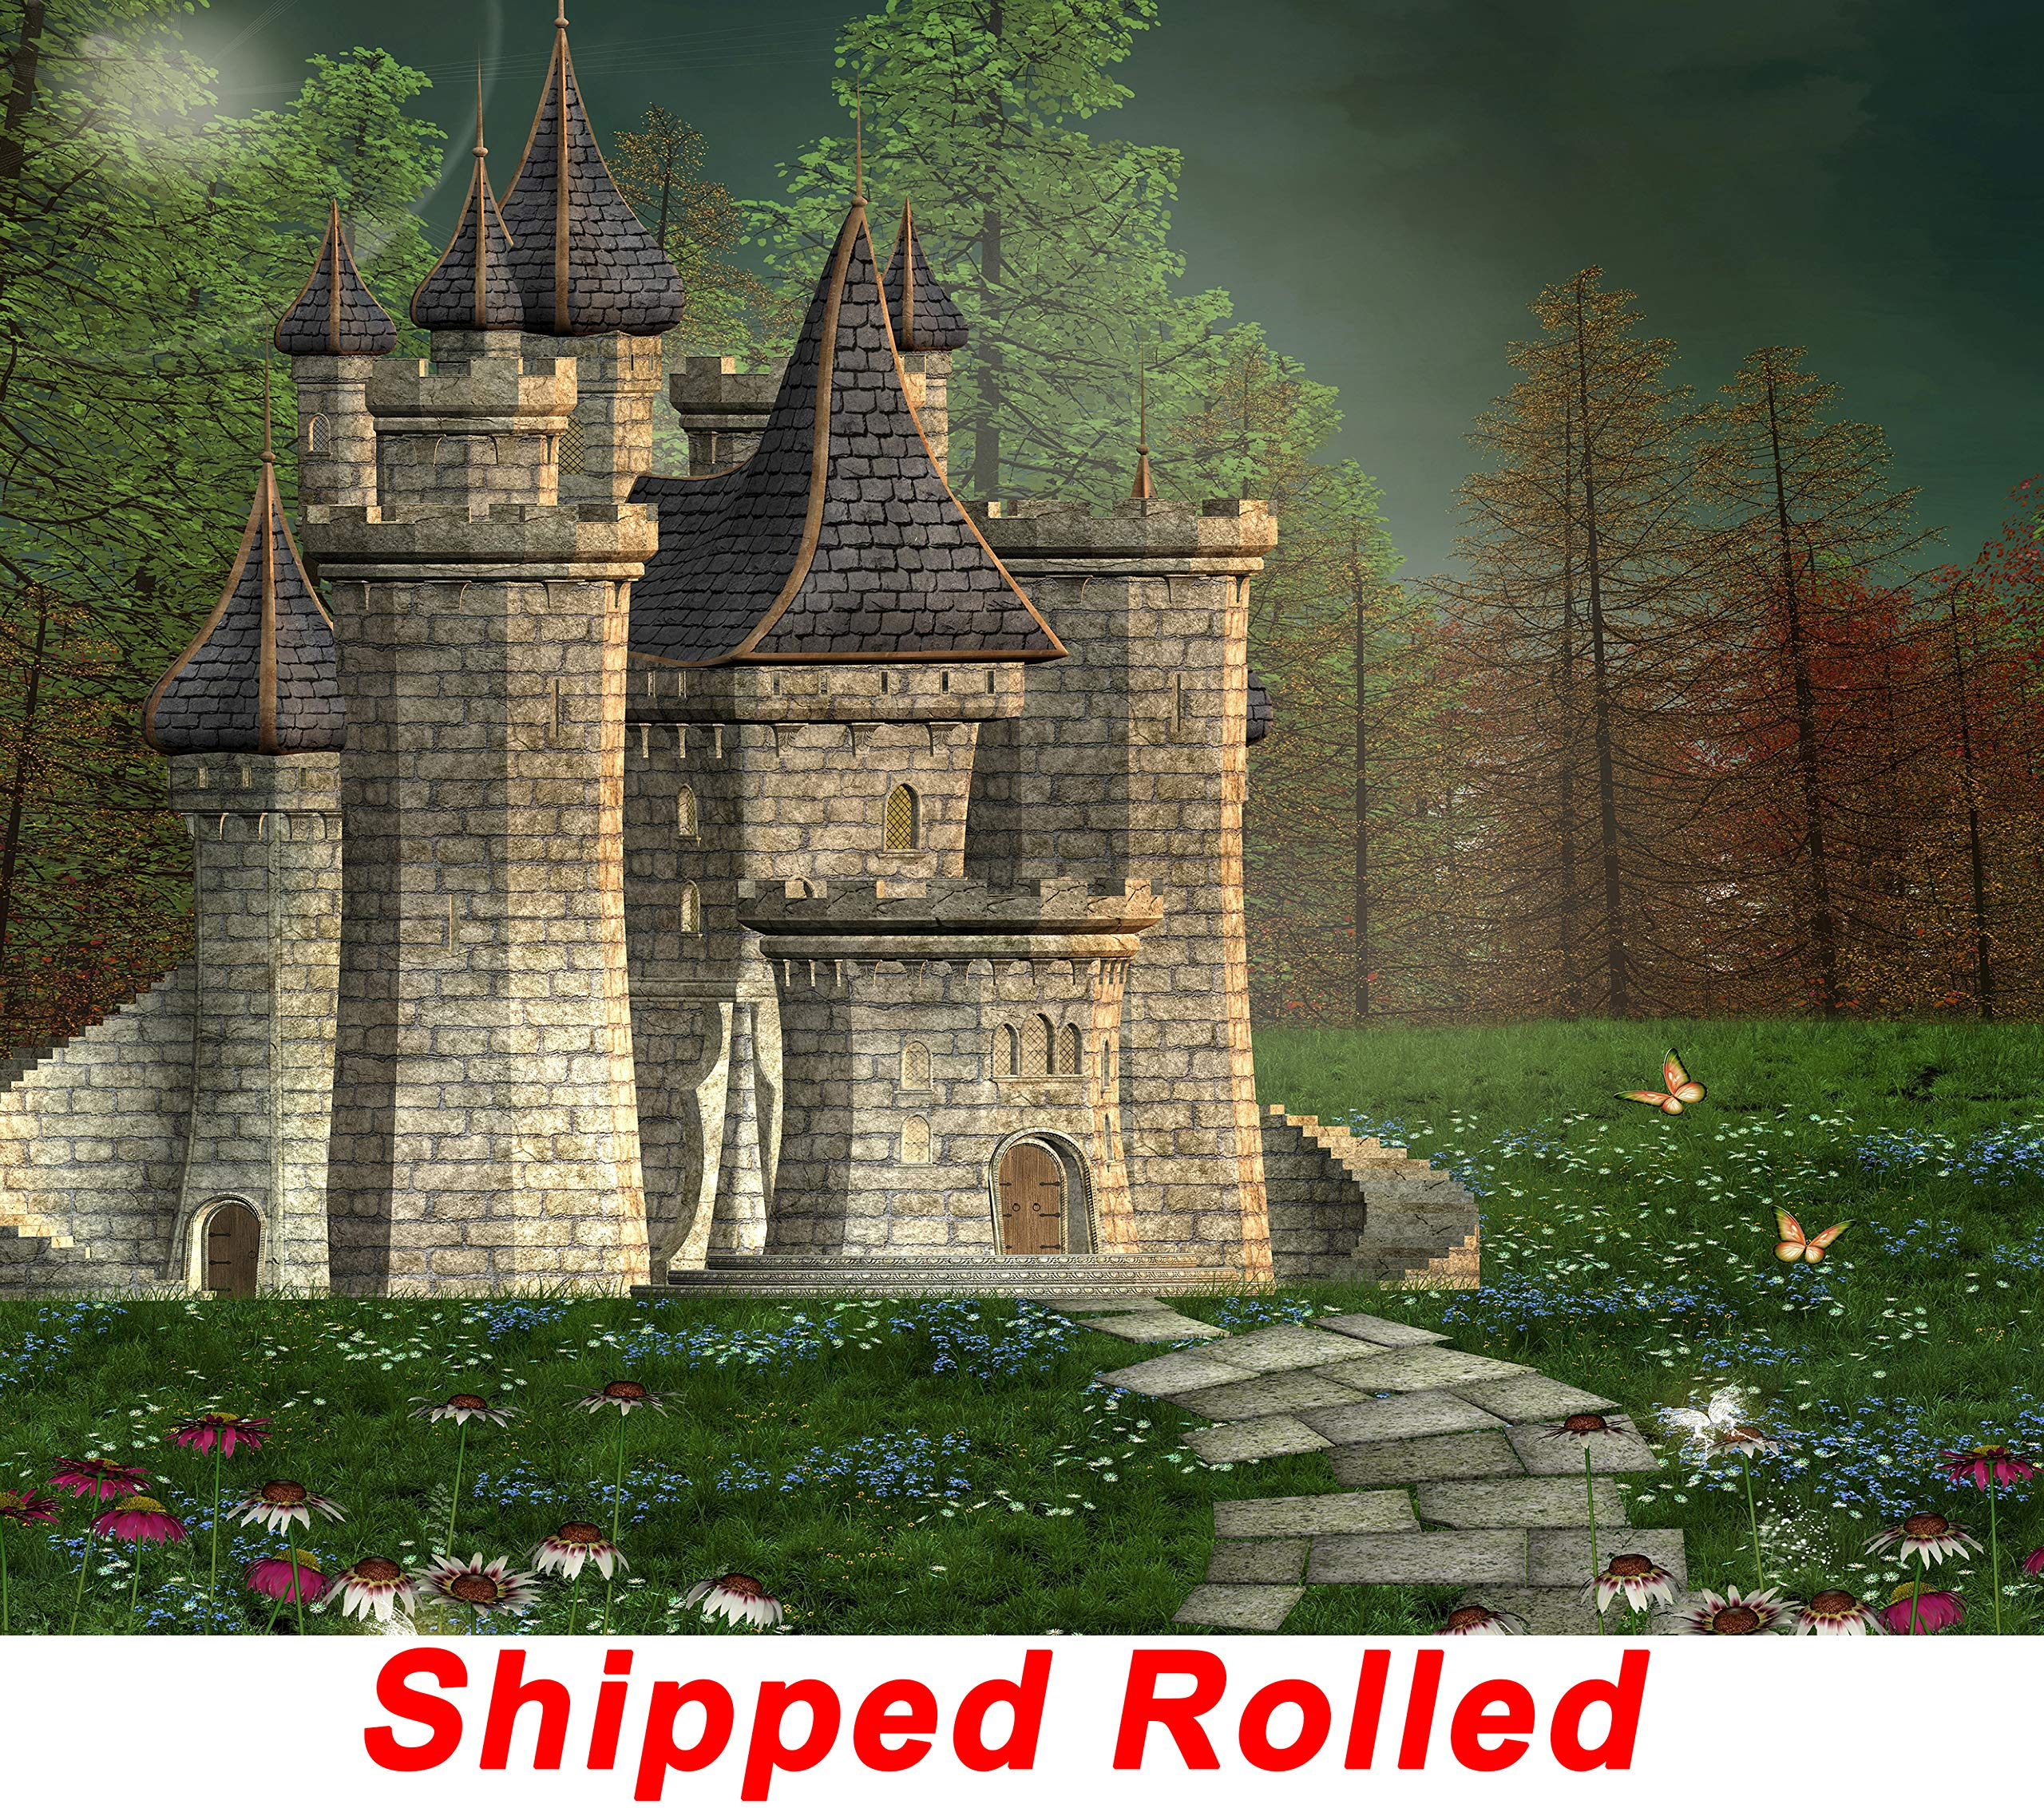 Old Castle Backdrop Chic Dark Enchanted Forest Fairy Tale Natural Scenic Butterfly Flowers Scene Princess Birthday Party Printed Fabric Photography Background (G0107, 10' Wide by 8' Tall)